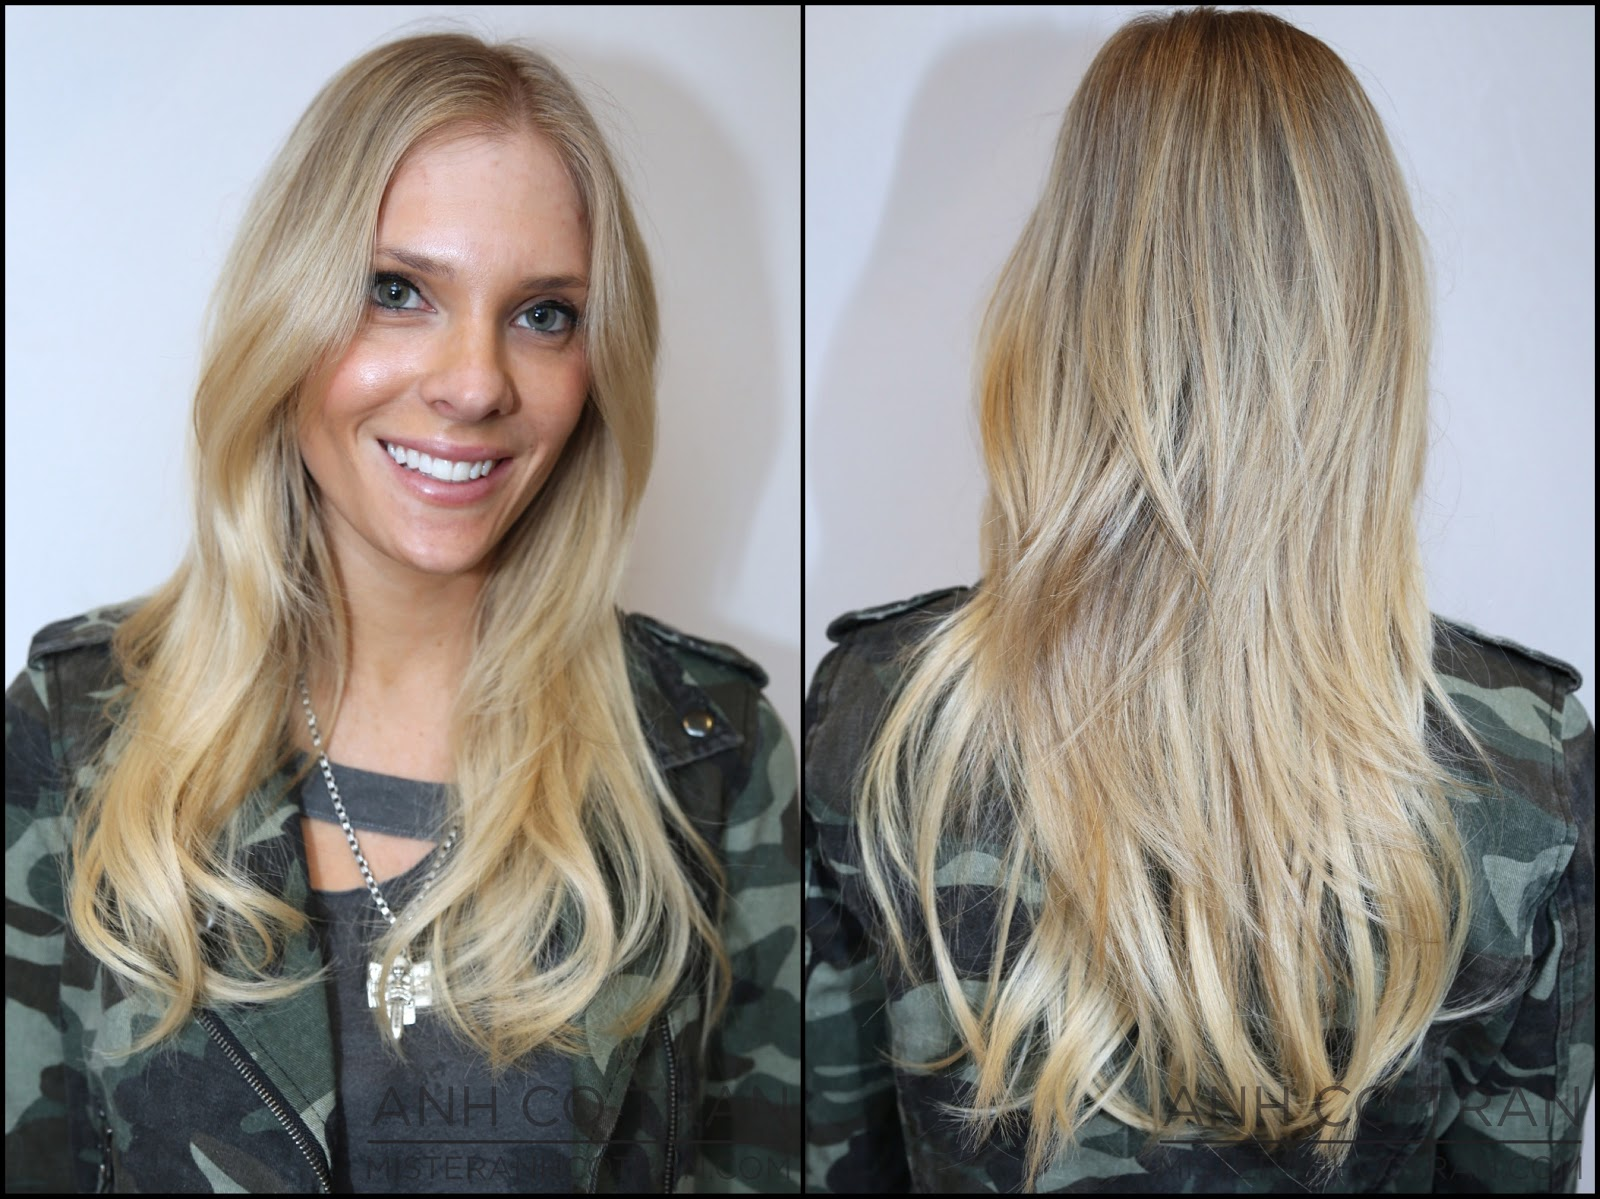 Nyc Lyndsey Fresh Length Tape Extensions And Texture Anh Co Tran